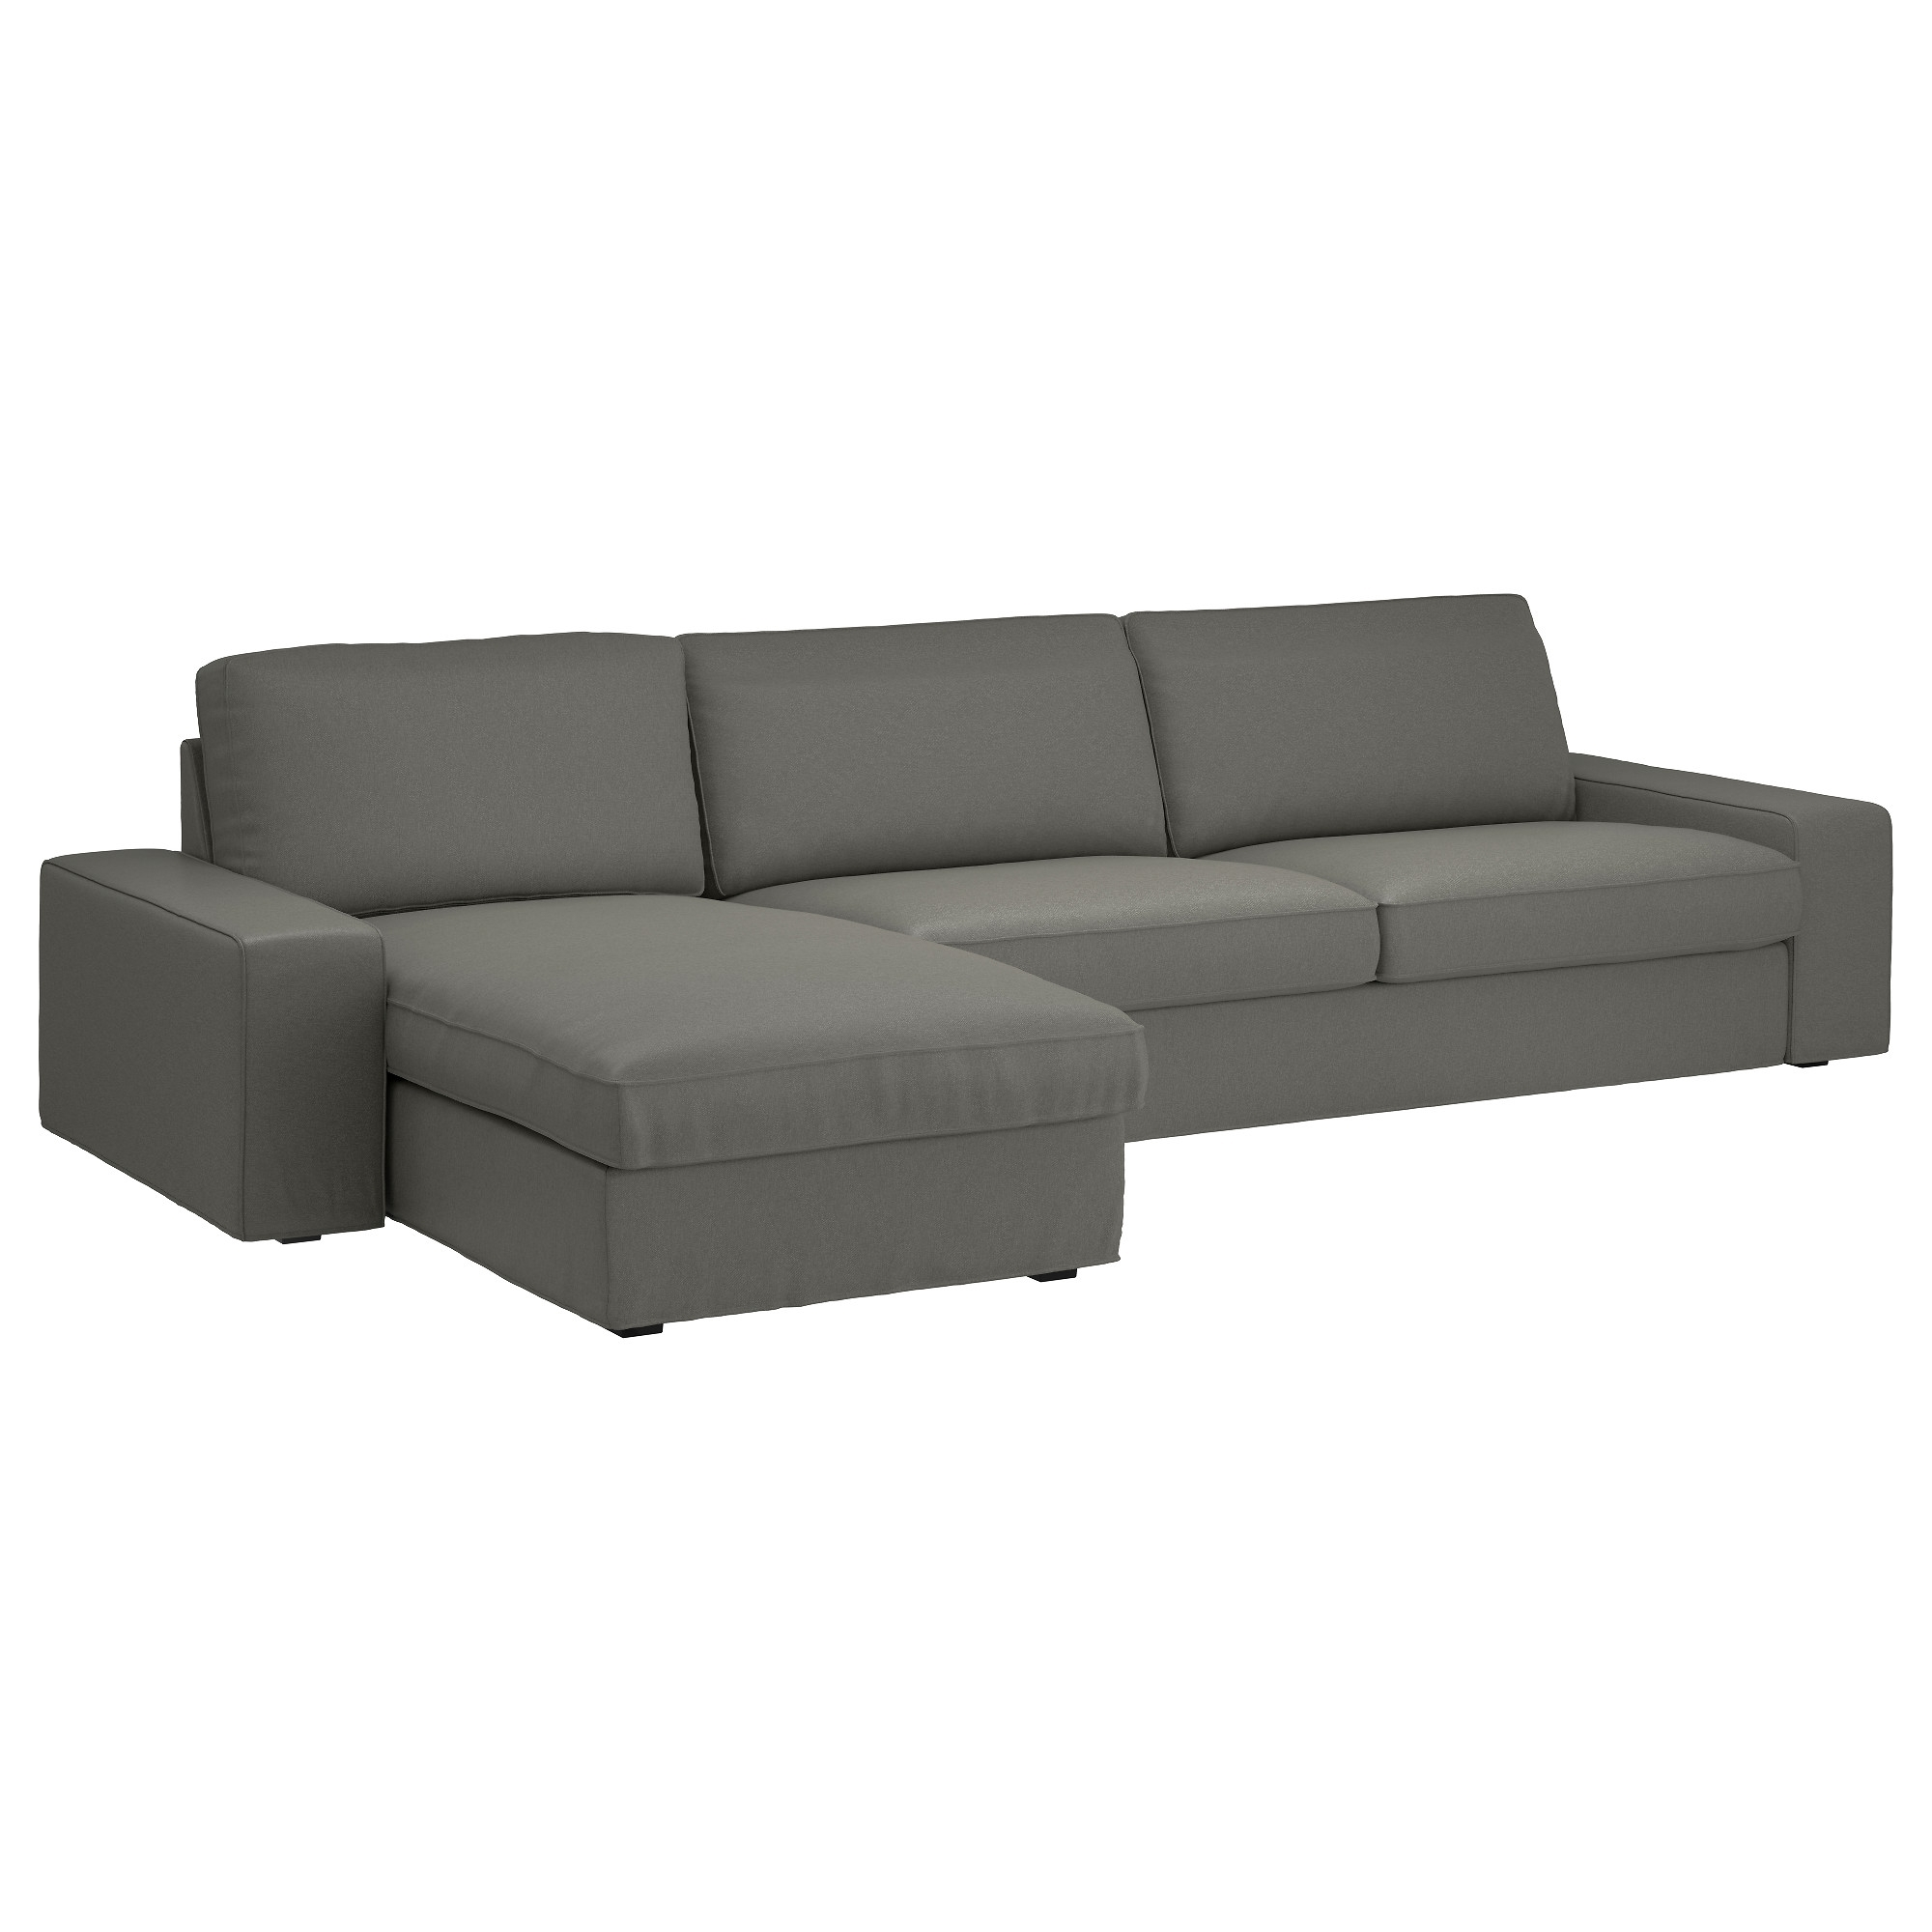 Most Recent Ikea Chaise Lounges In Kivik Sectional, 4 Seat – Hillared Beige – Ikea (View 8 of 15)